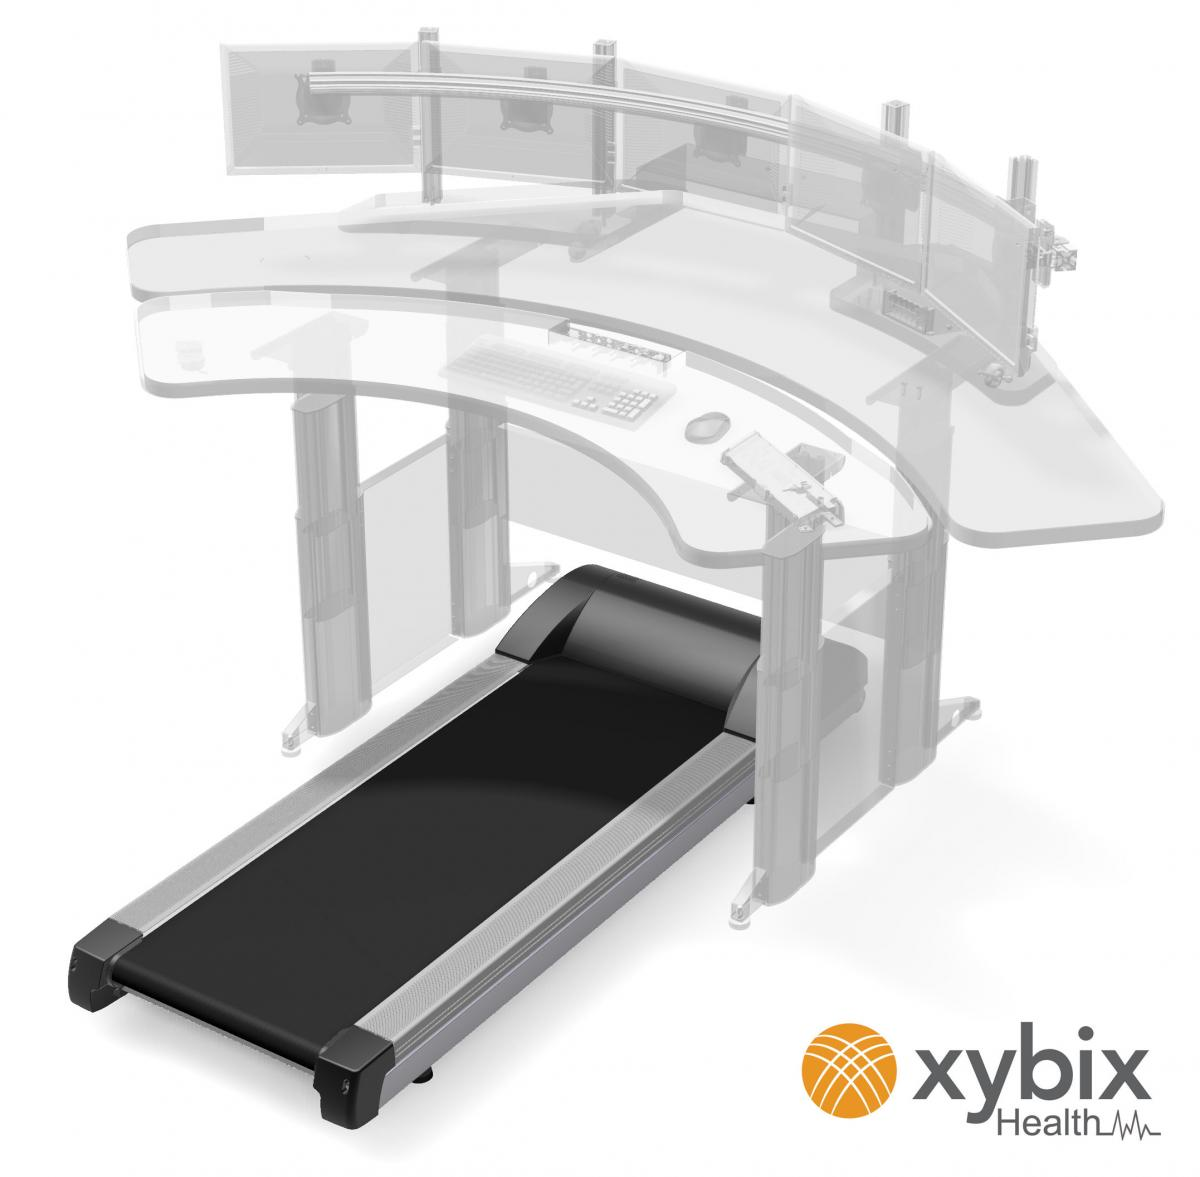 Xybix Health Treadmill